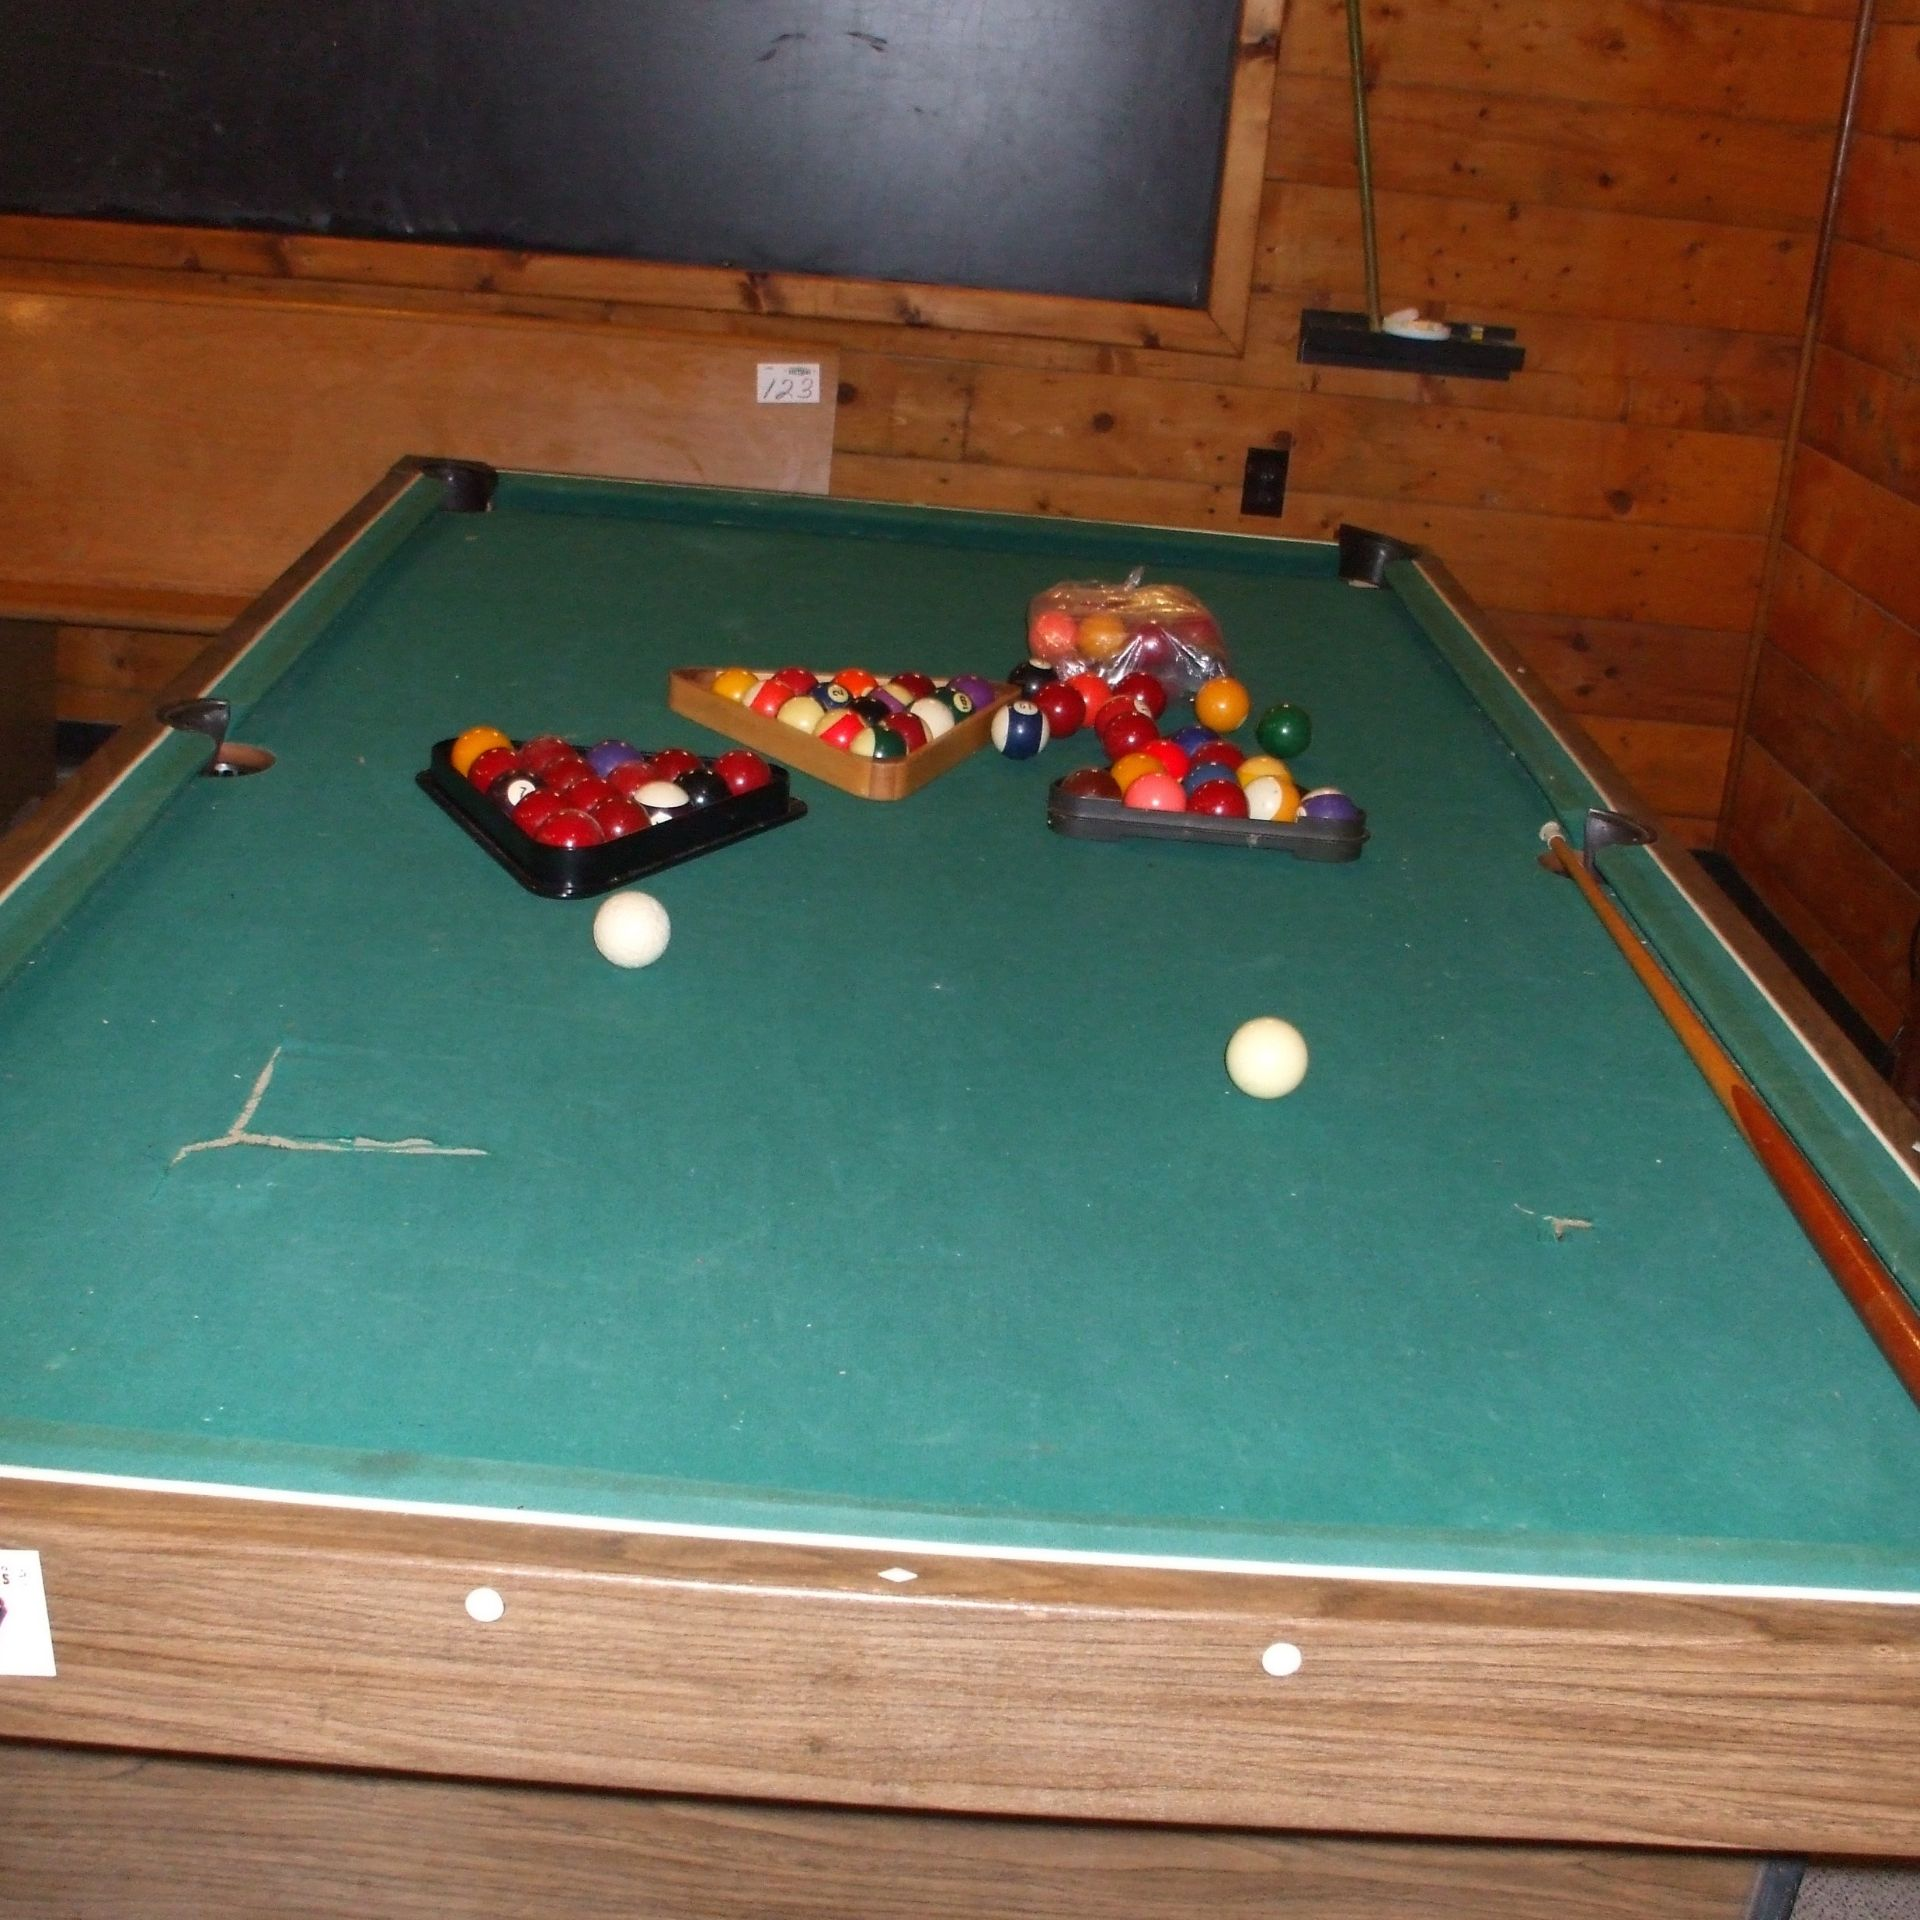 Pool table, balls & cues - Image 2 of 4